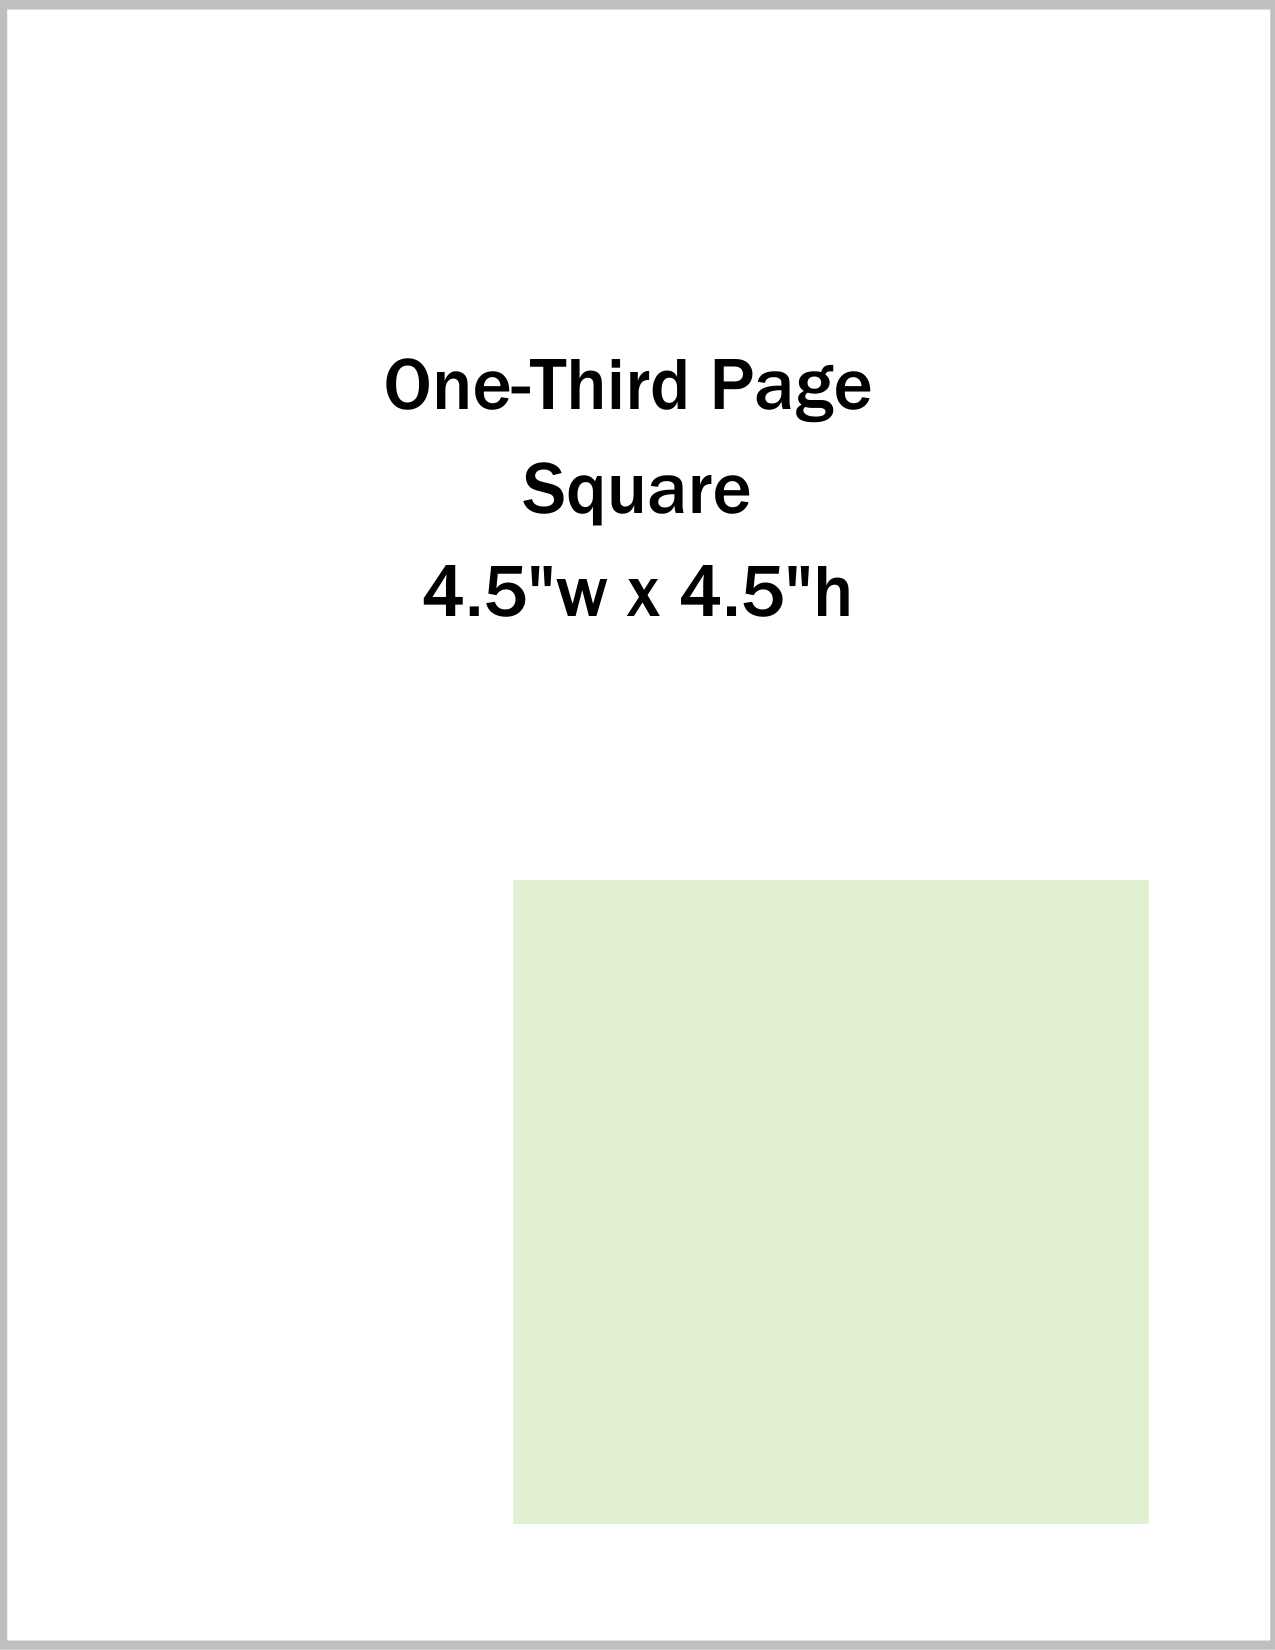 One-Third Page Square